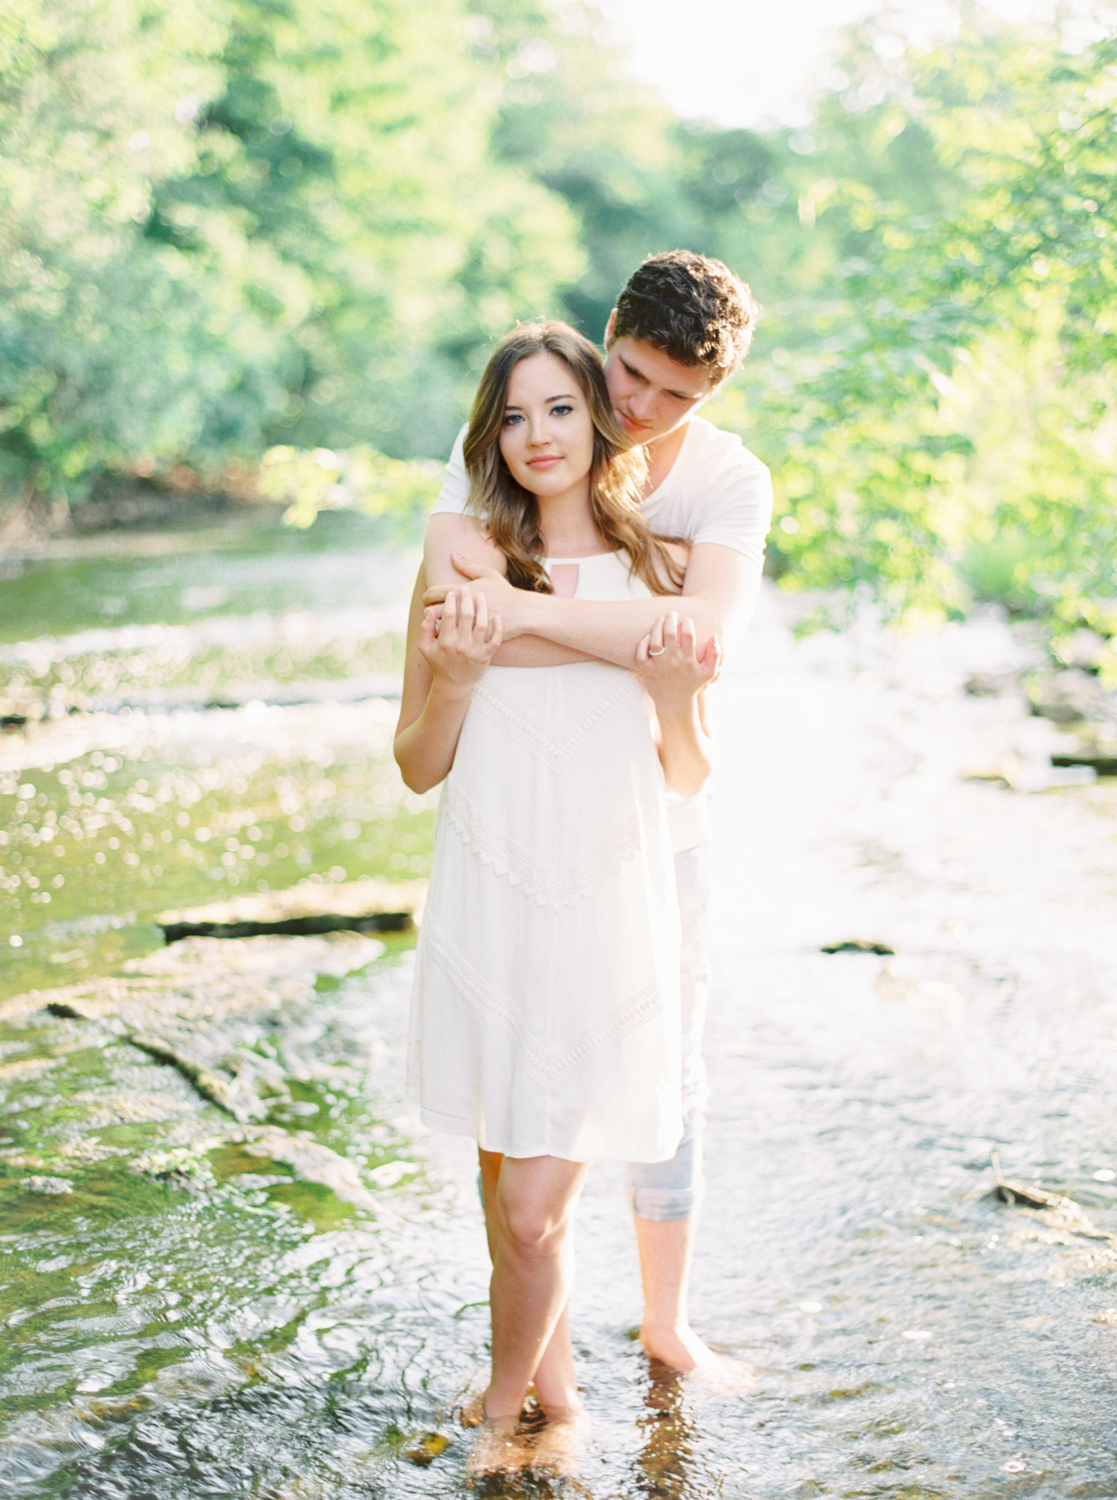 Niagara Wedding Photographer - Websters Falls Engagement